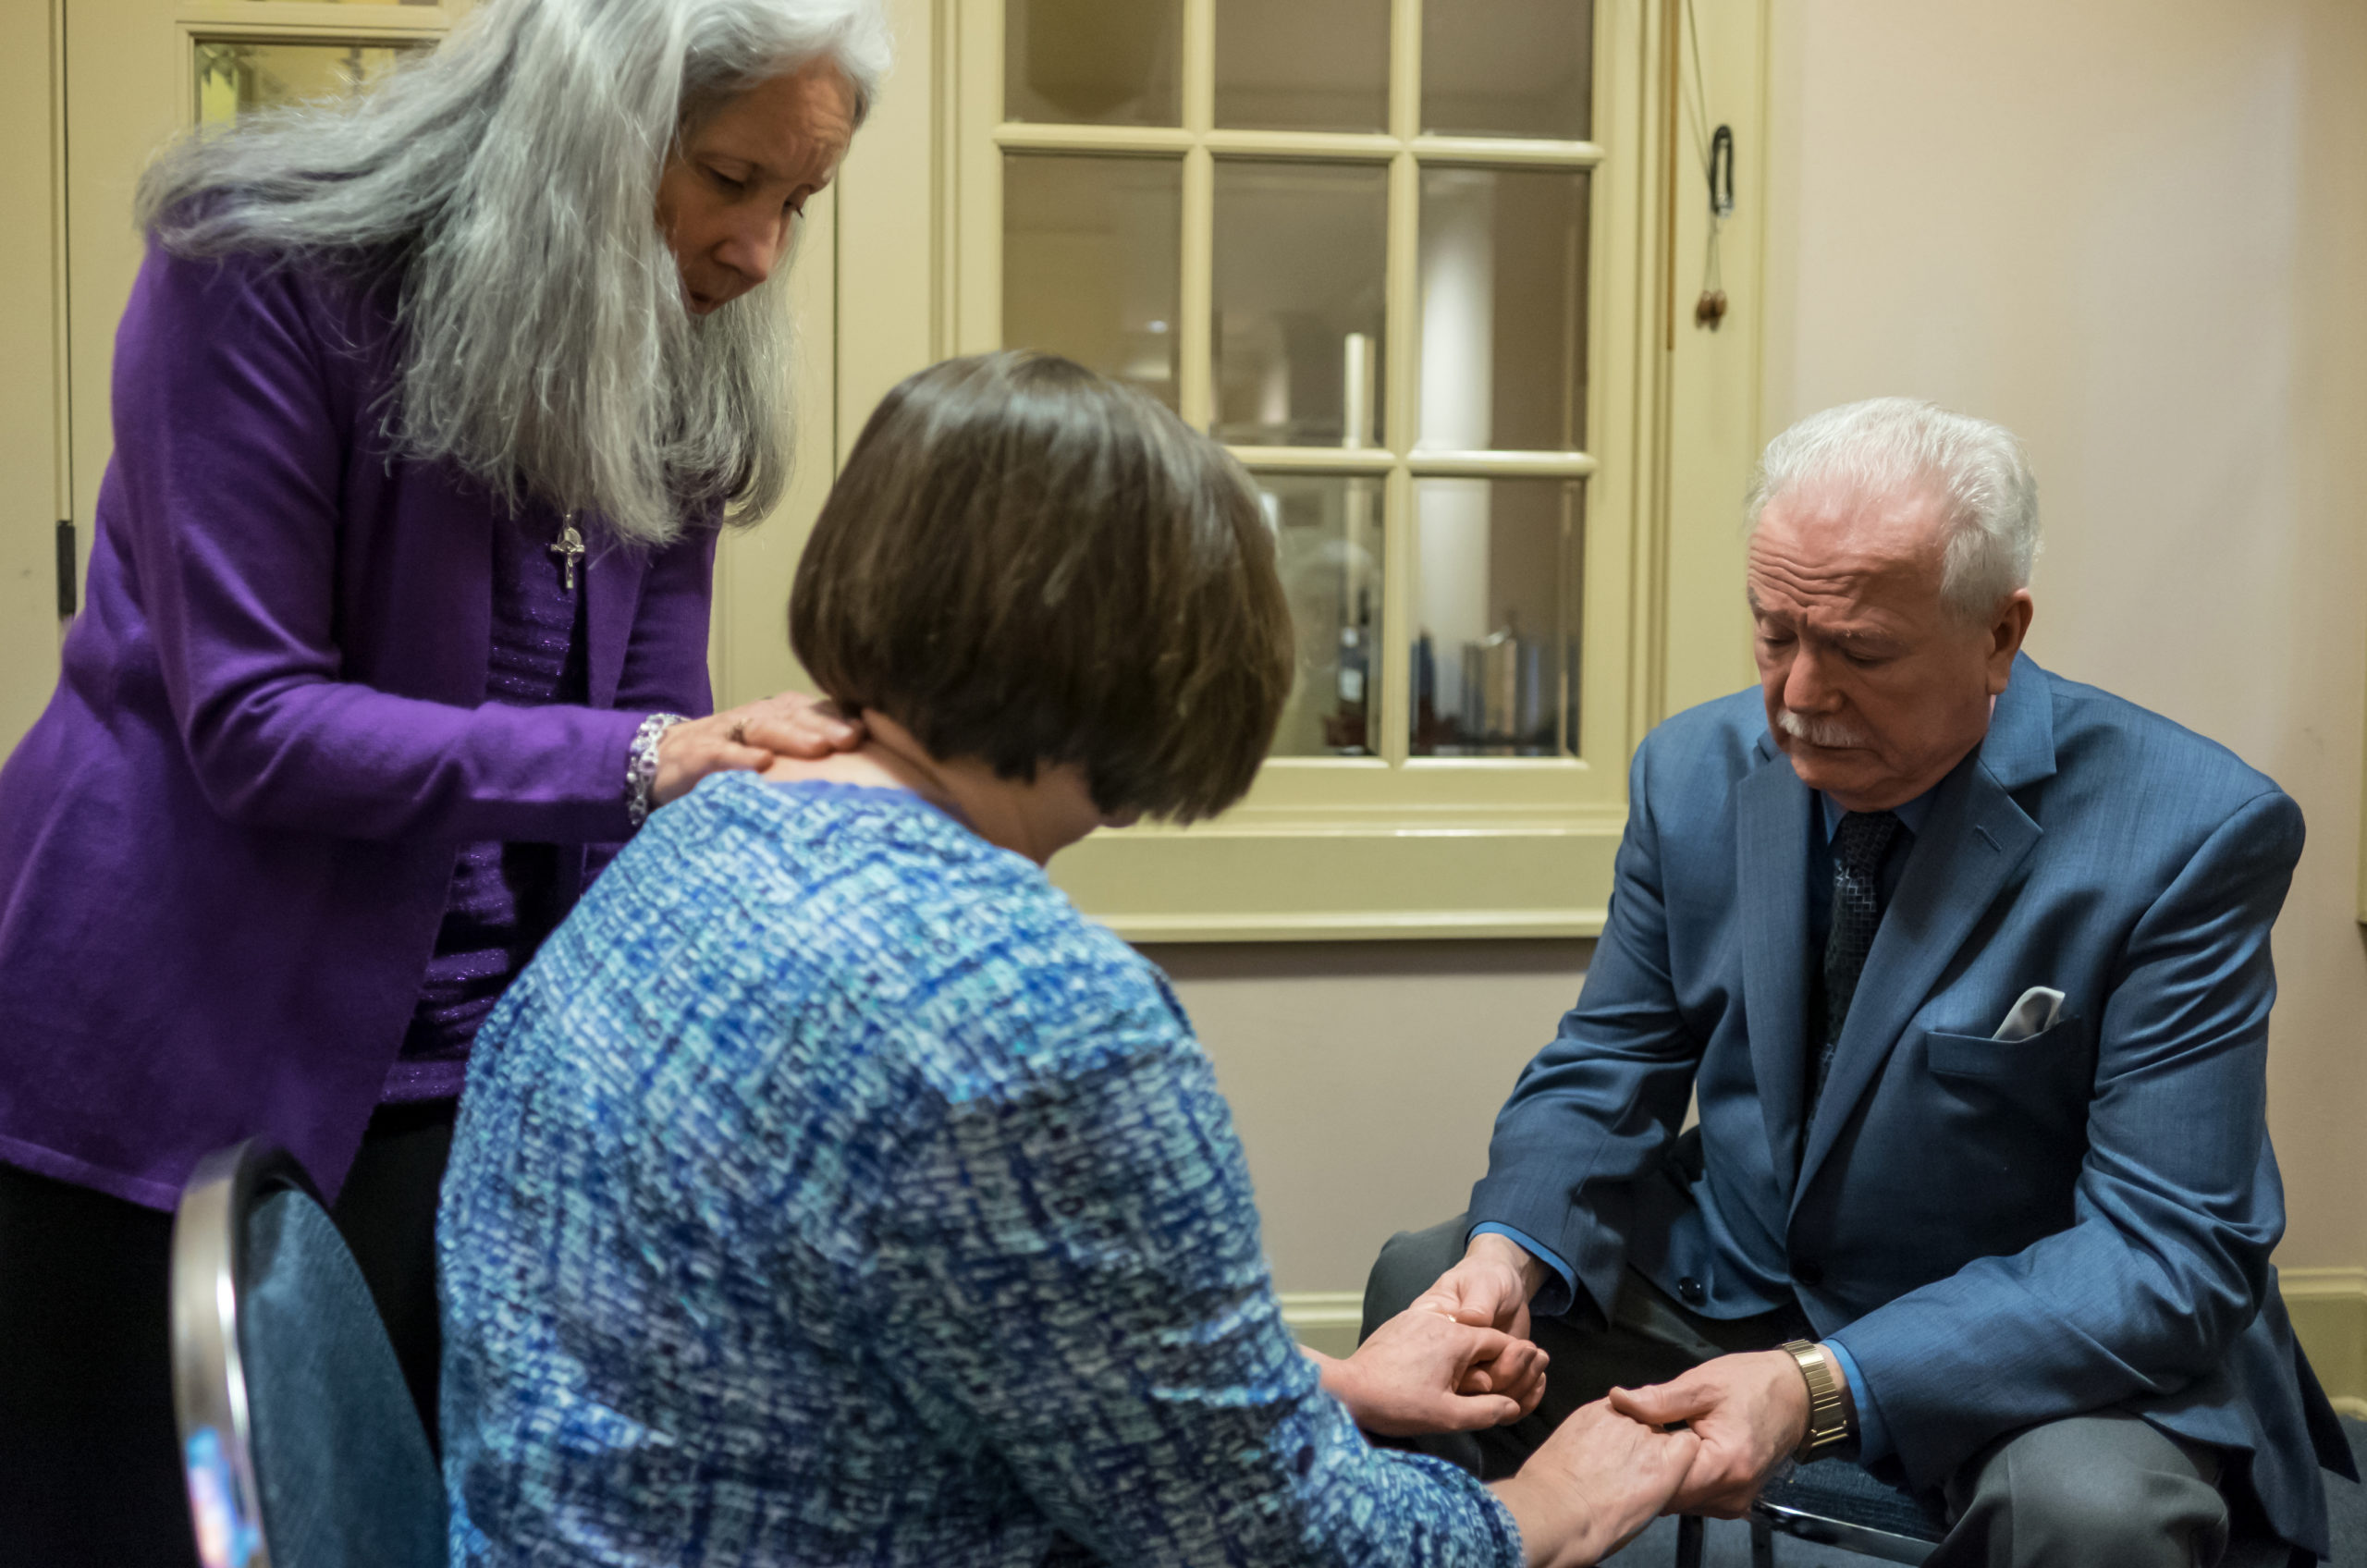 Healing Prayer Ministers John Sullivan and his wife Carmen pray with a supplicant after Mass at Our Lady of Perpetual Hope Parish Church on Sunday November 15, 2015 in Everett, Washington. (PHOTO by Stephen Brashear)